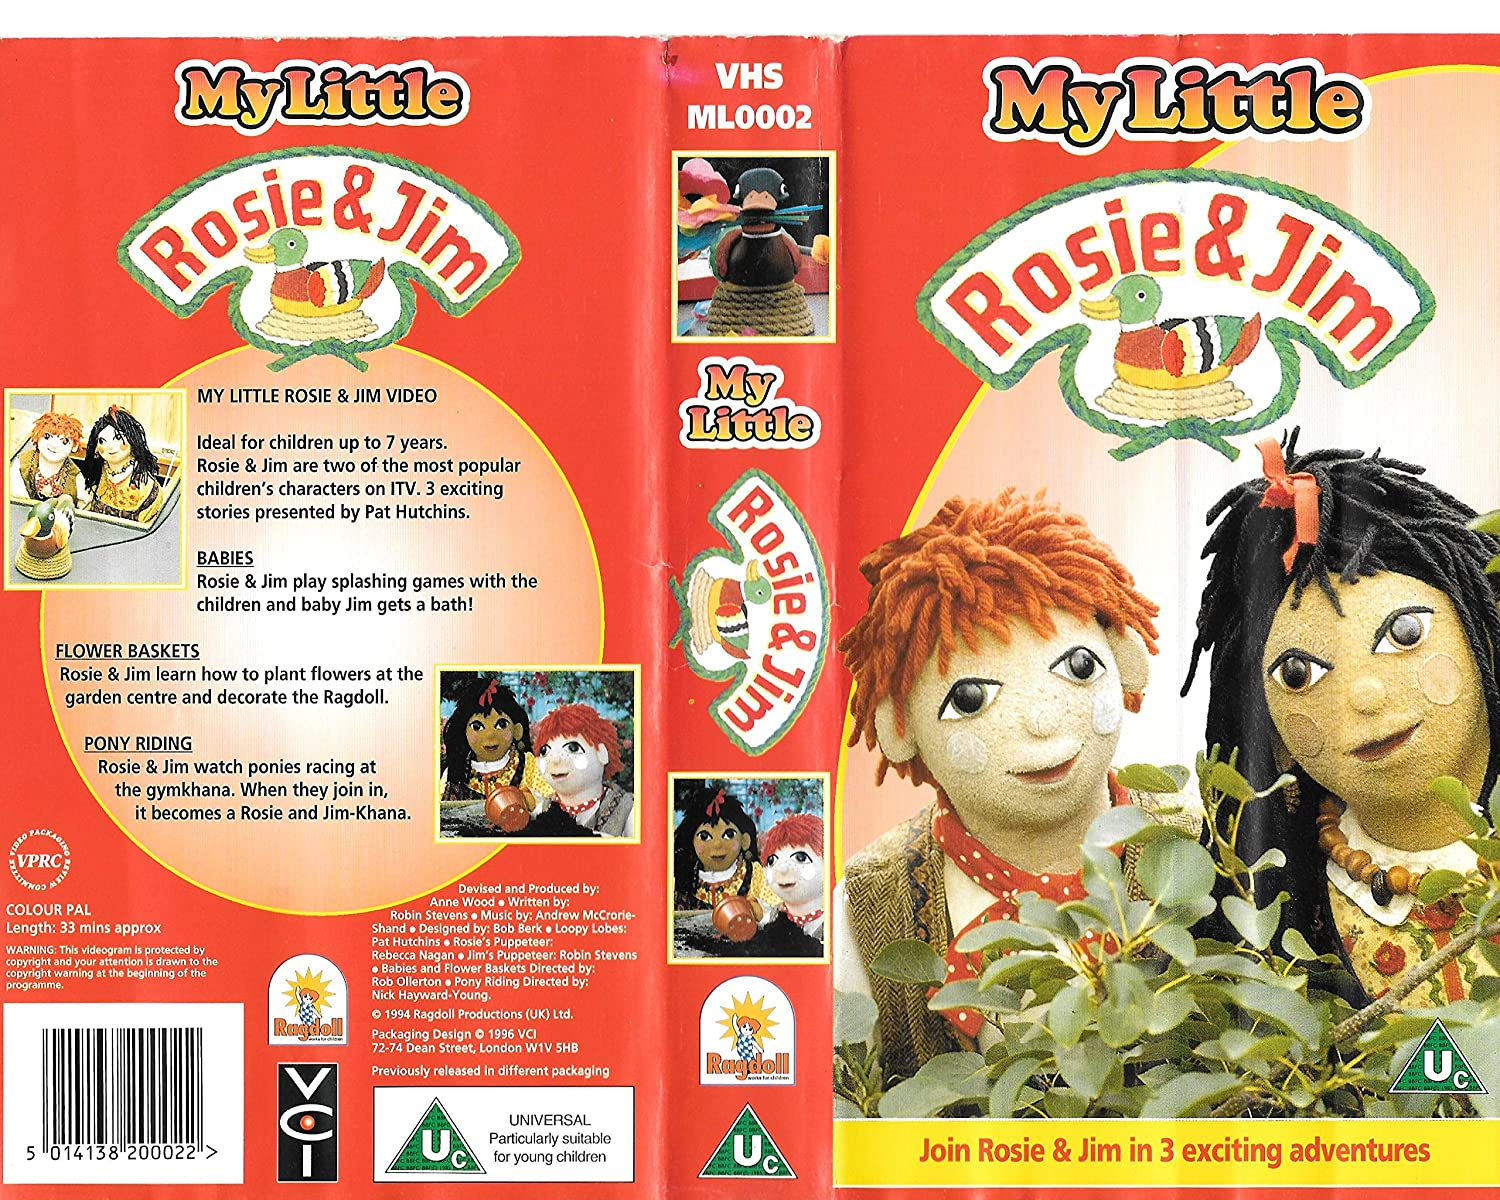 My Little Rosie & Jim: Babies / Flower Baskets / Pony Riding